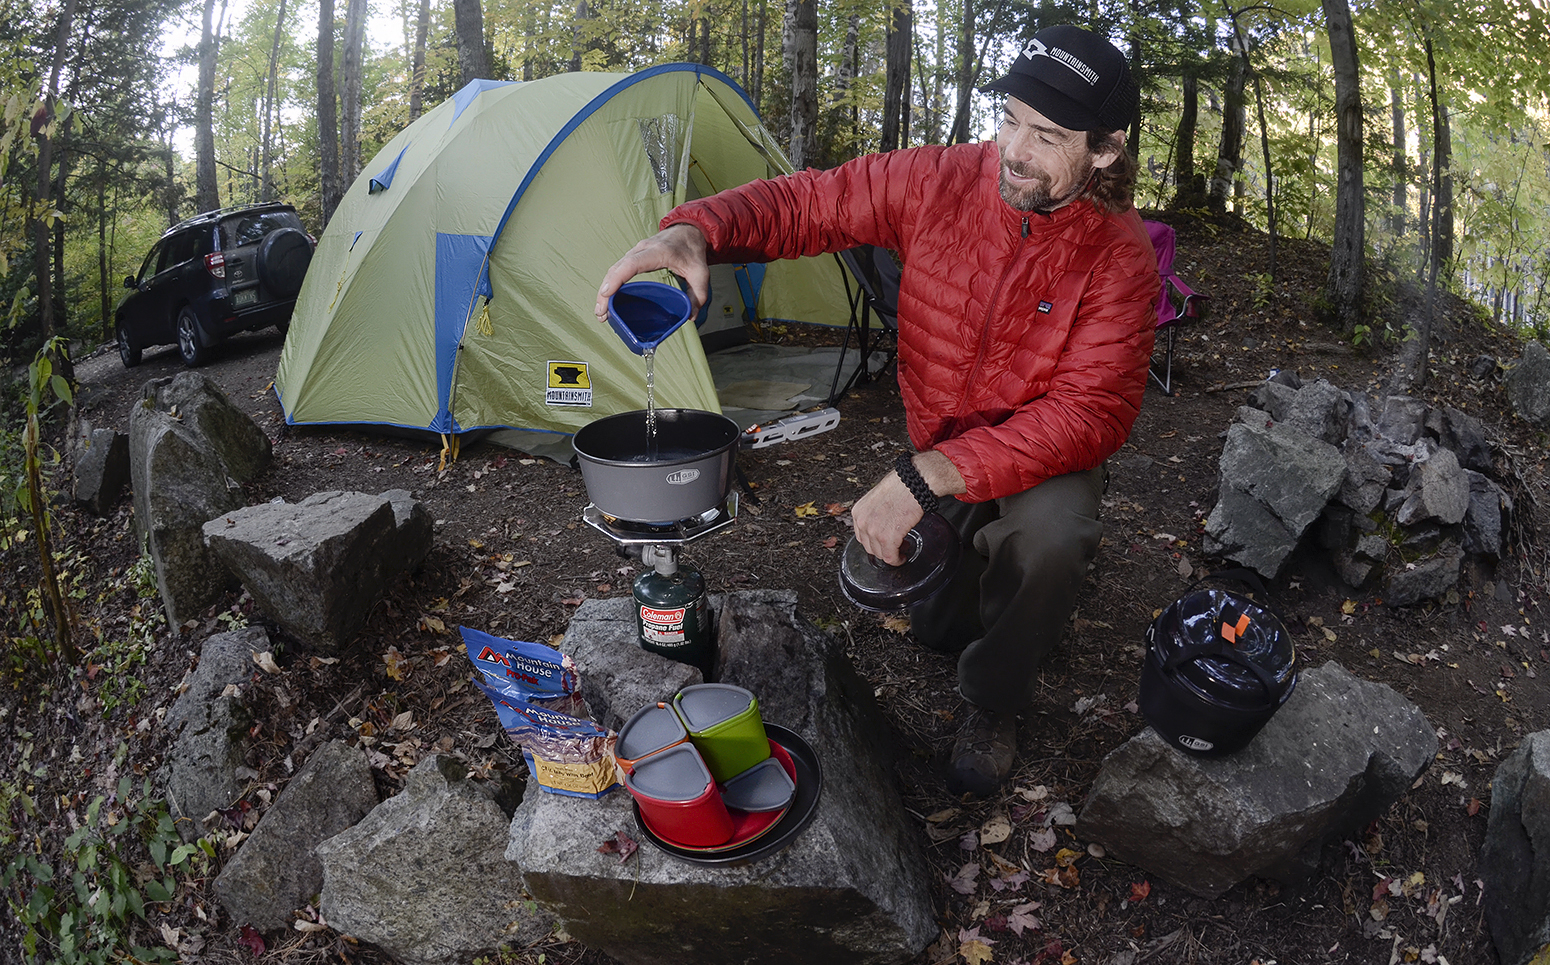 Curtis Savard prepares food at his campsite in front of the Mountainsmith Conifer tent